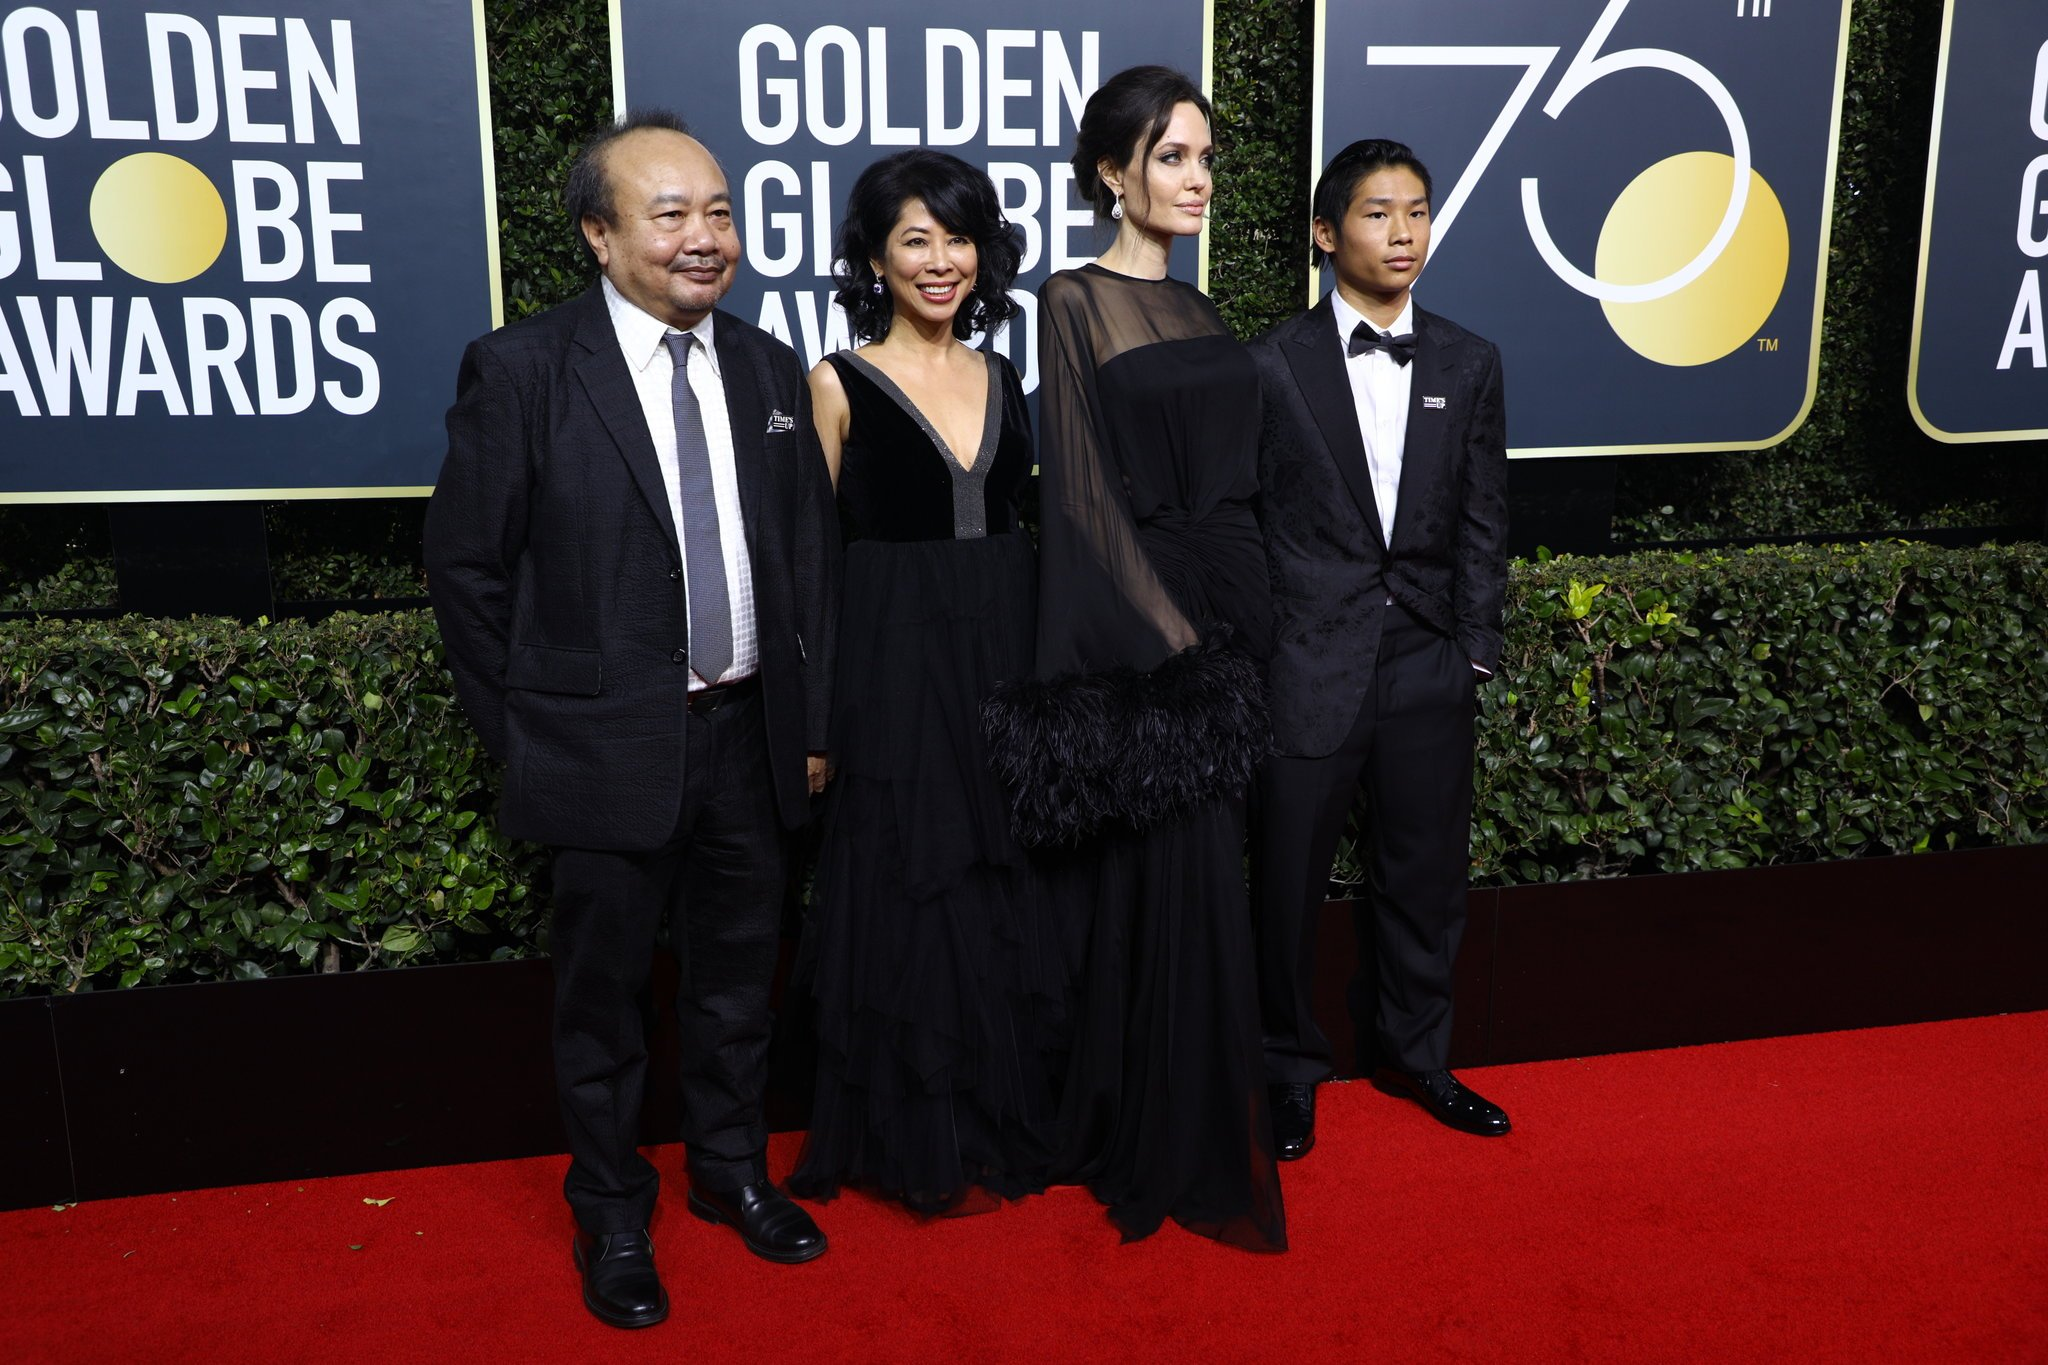 Golden Globe 2018 Red Carpet